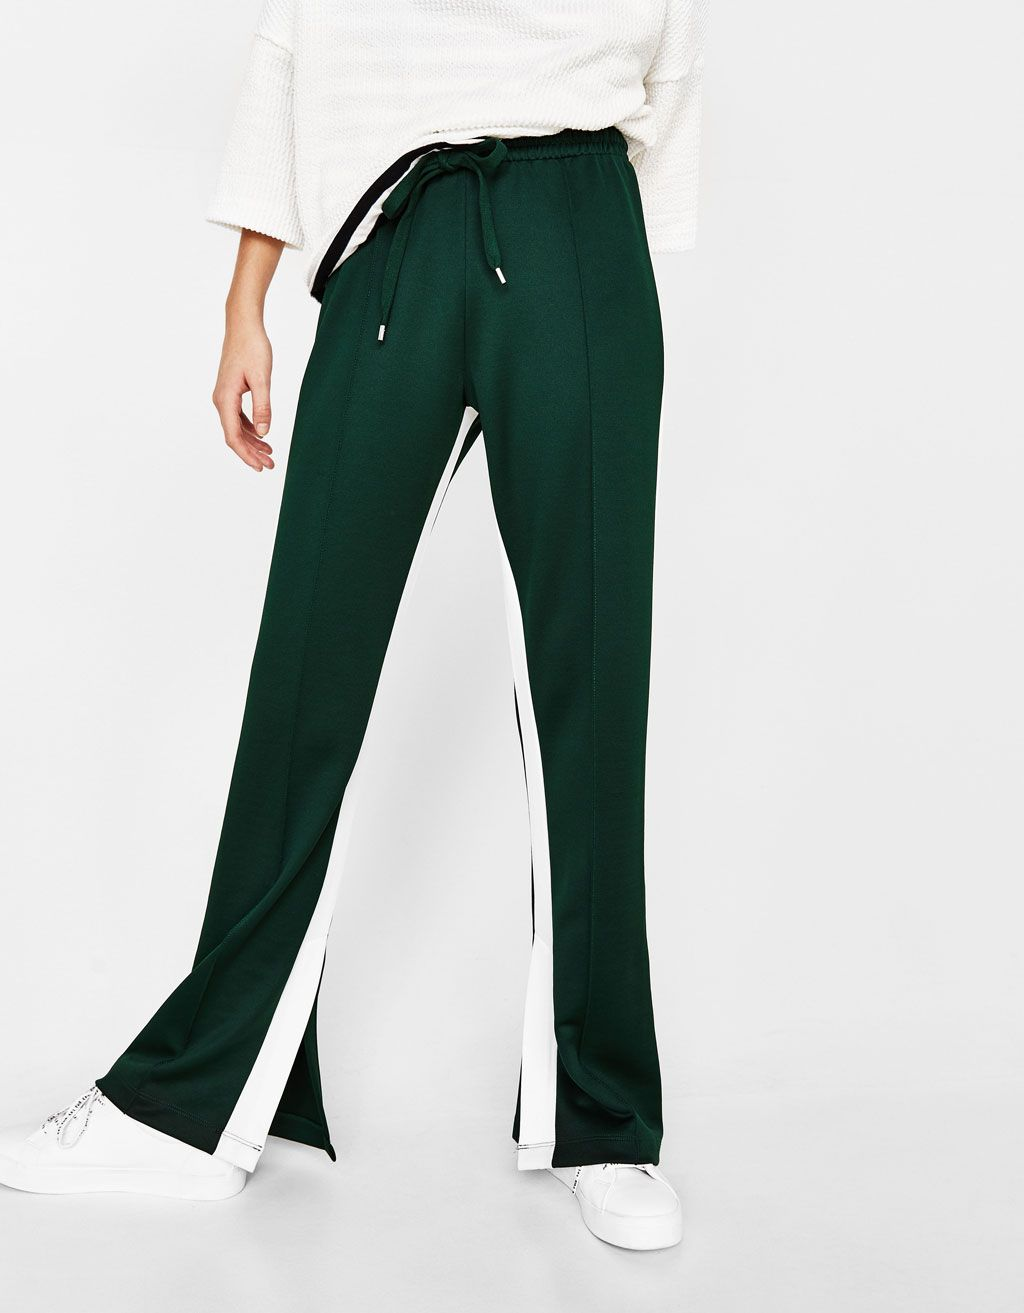 f3e1e372b922cc Wide-leg trousers with side stripes - Bershka #fashion #product #stripes  #green #girl #trend #trendy